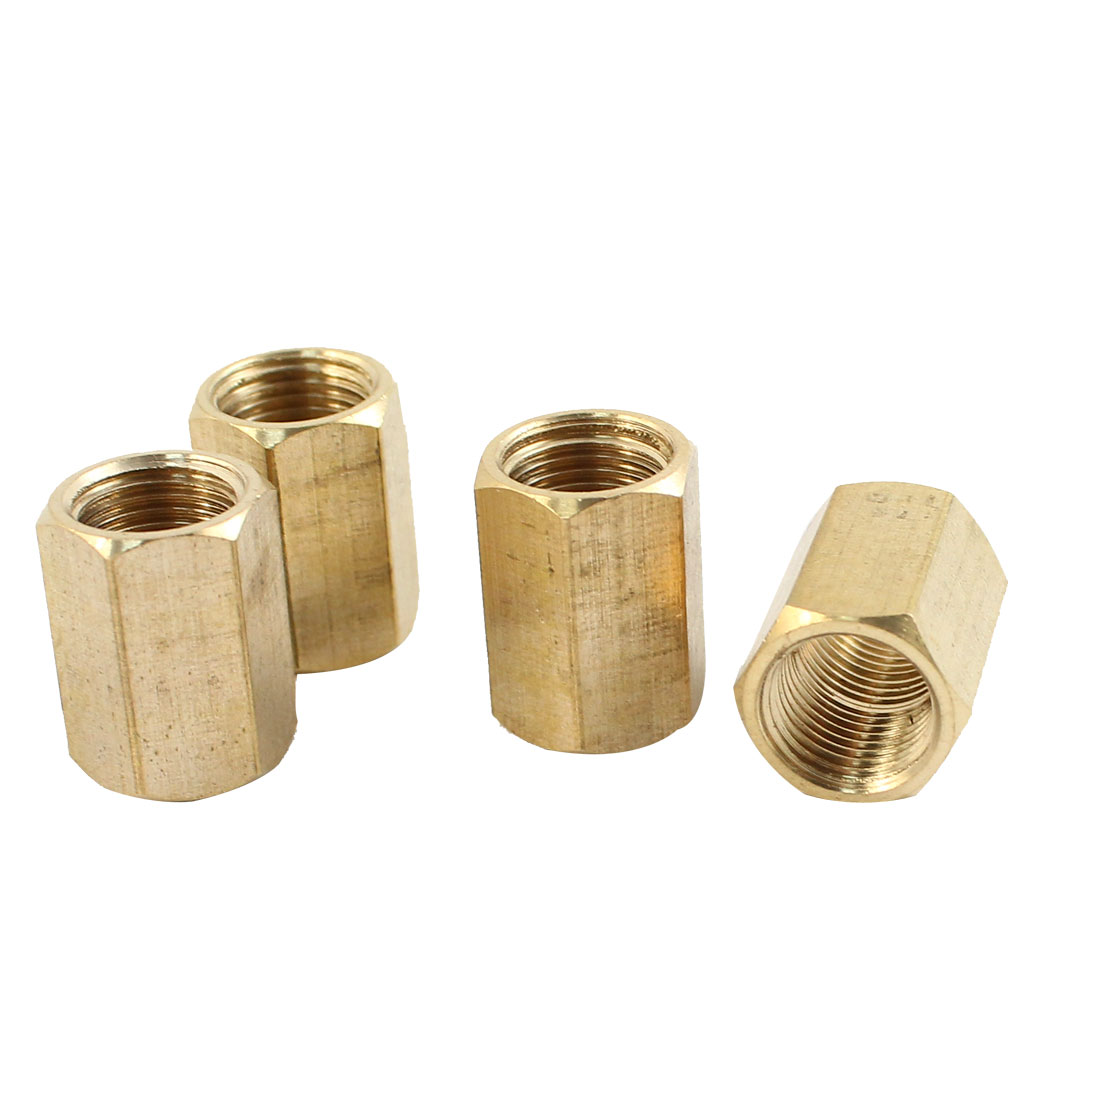 4pcs 1/8PT Female Thread Hex Straight Air Pneumatic Connector Joint Adapter Brass Tone